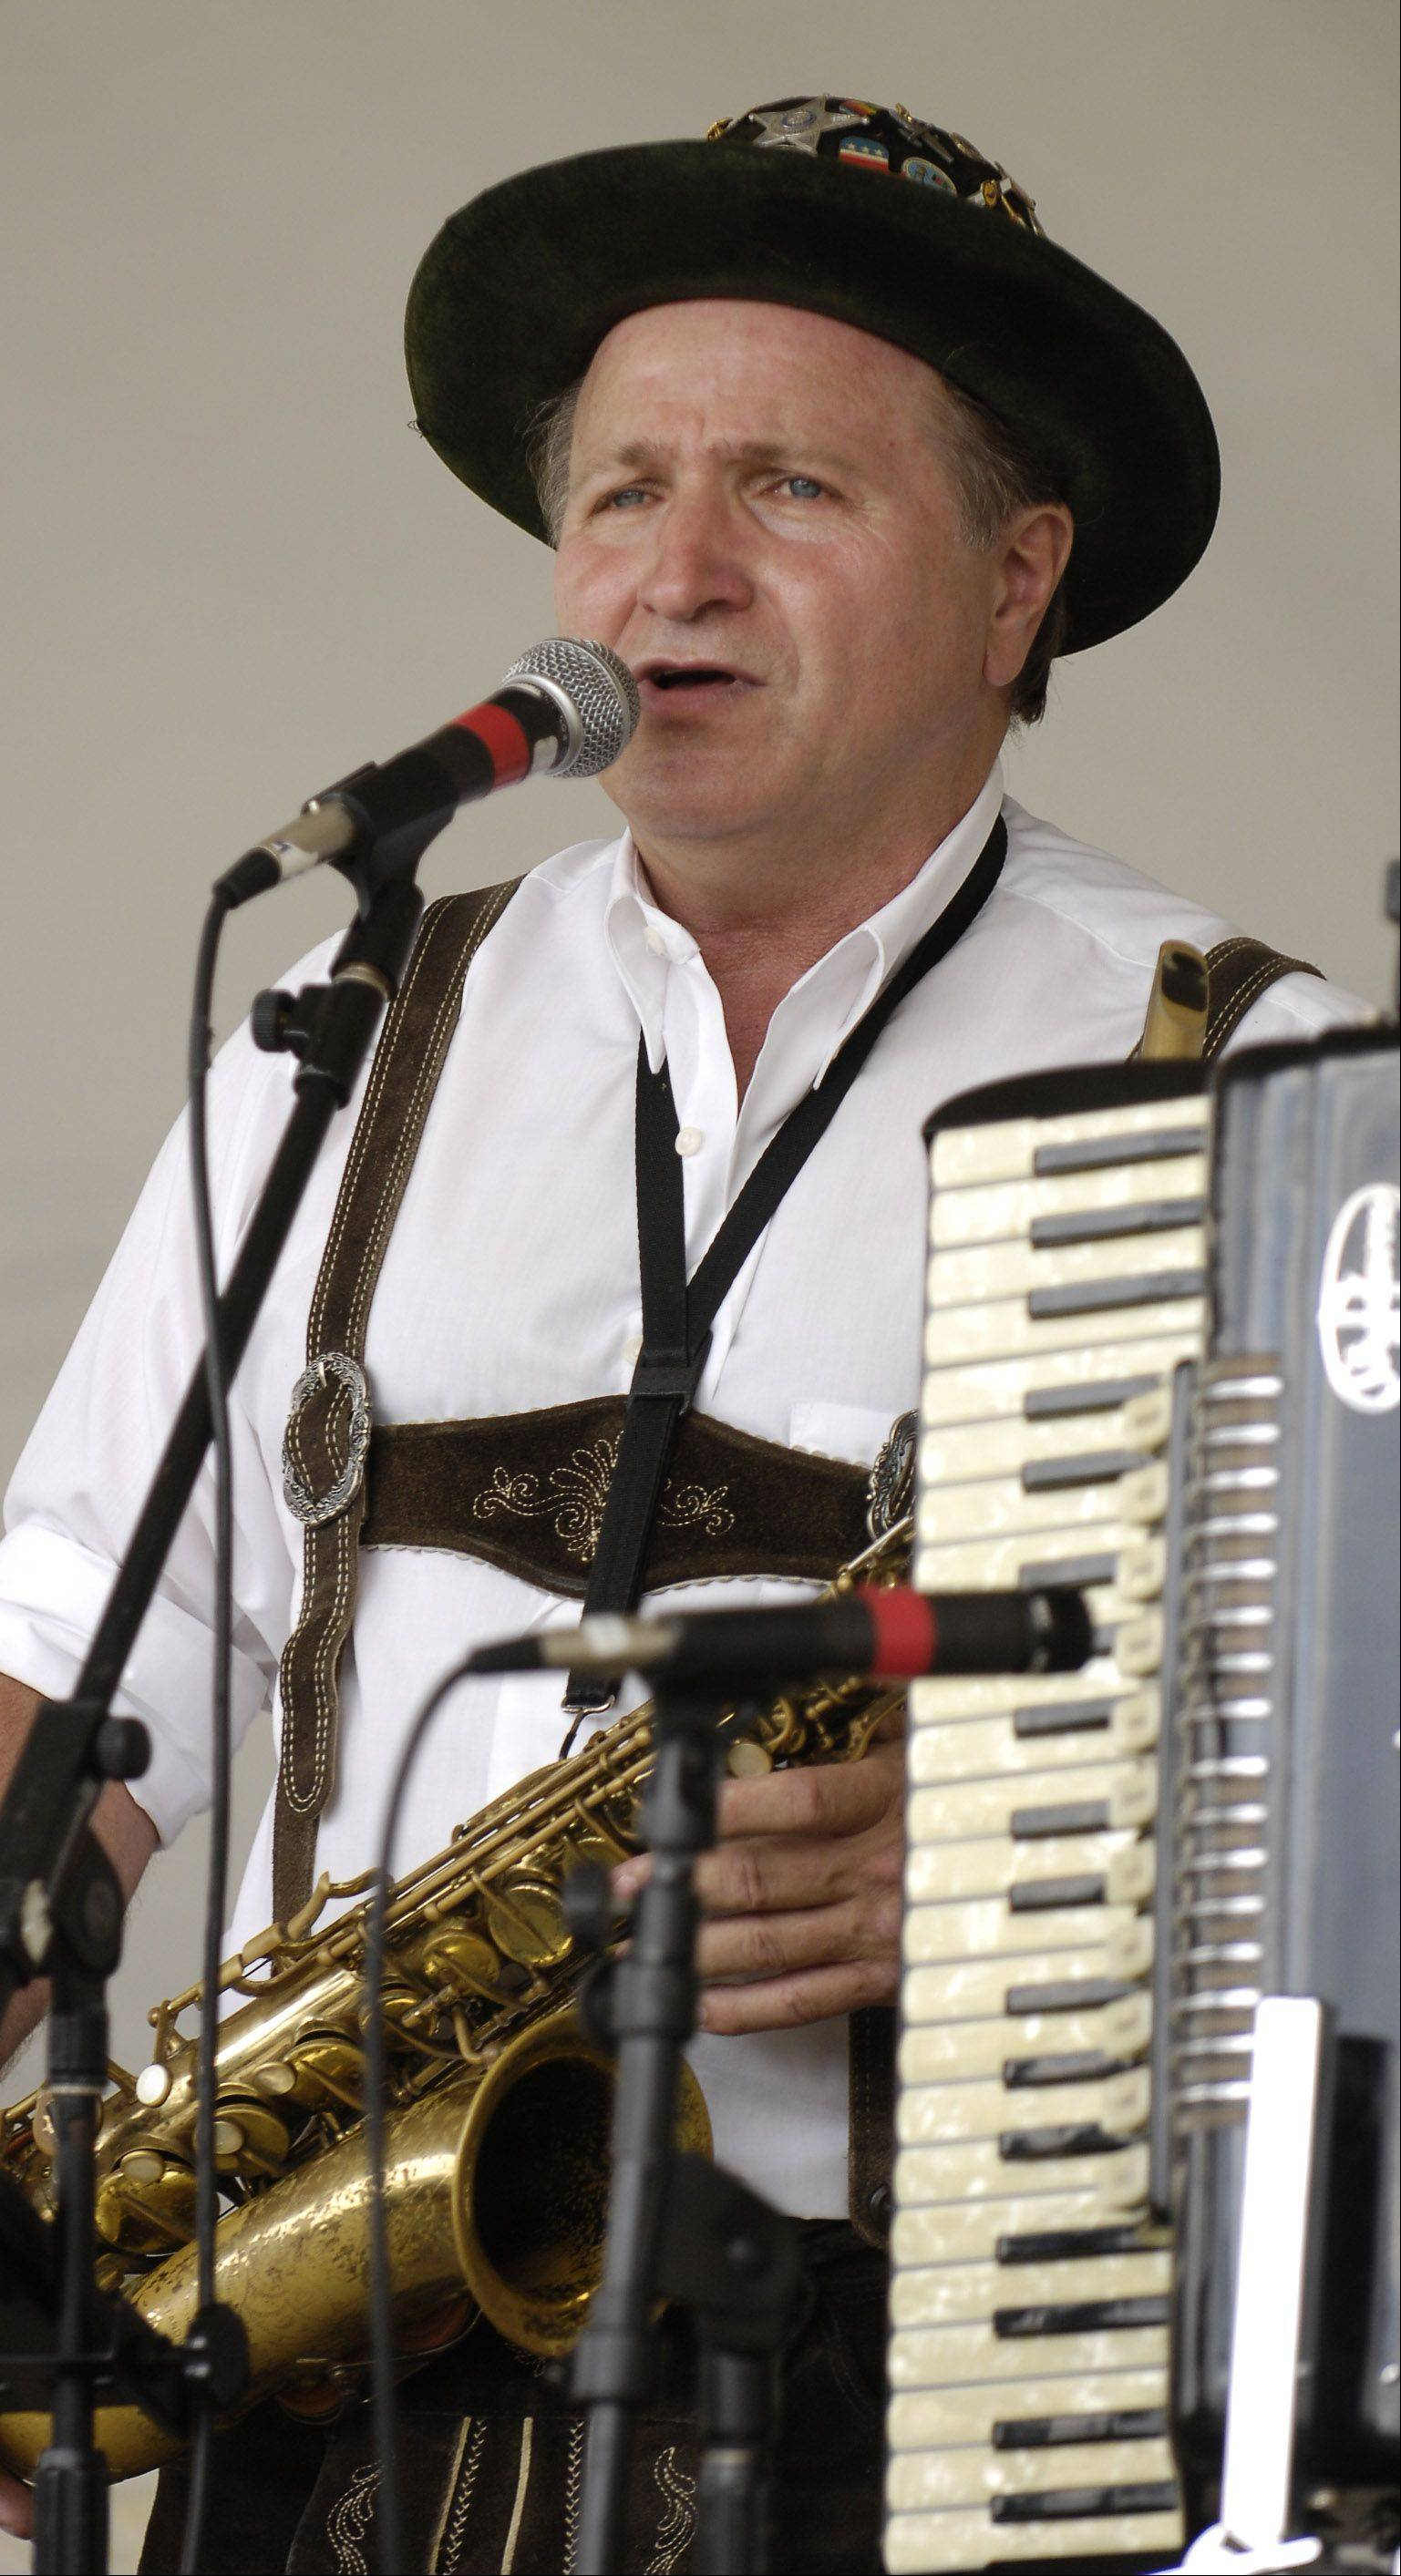 Johnny Wagner of Pingree Grove performed at the 2012 Platzkonzert, an Oktoberfest-themed festival held this year at Sears Centre.